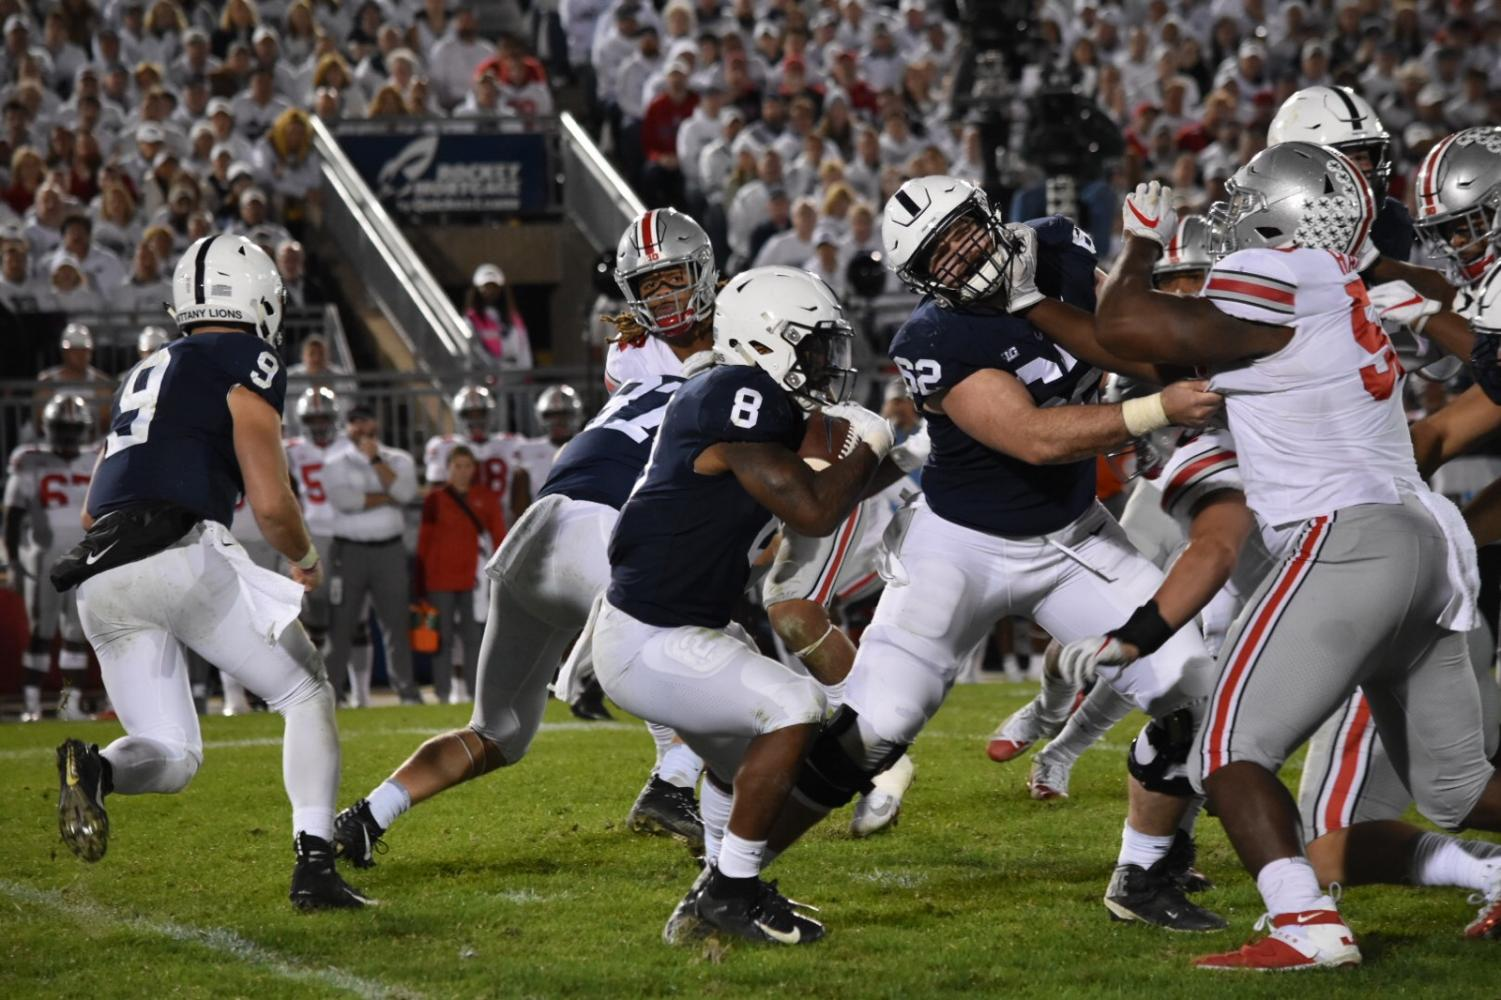 Quarterback, Trace Mcsorley, and Running Back, Mark Allen run while making a play in the Ohio State game. The game was Penn State versus Ohio State at Beaver Stadium. The final score was 27-26. Penn State lost by one point in the last seven minutes of the game.